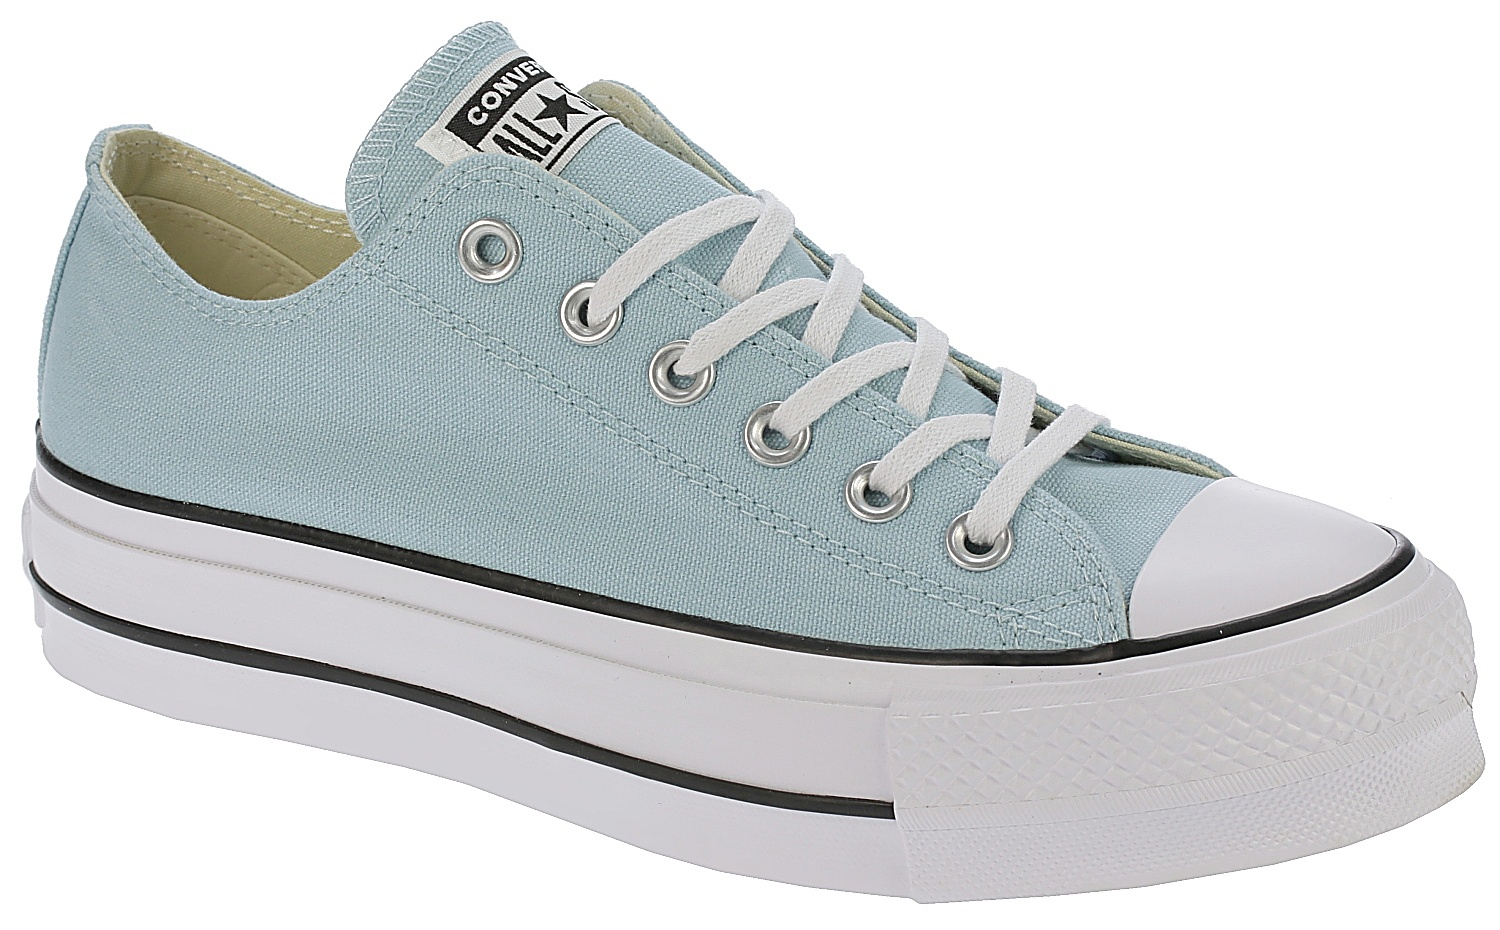 boty Converse Chuck Taylor All Star Lift OX - 560687 Ocean Bliss White  87e95f20cd6